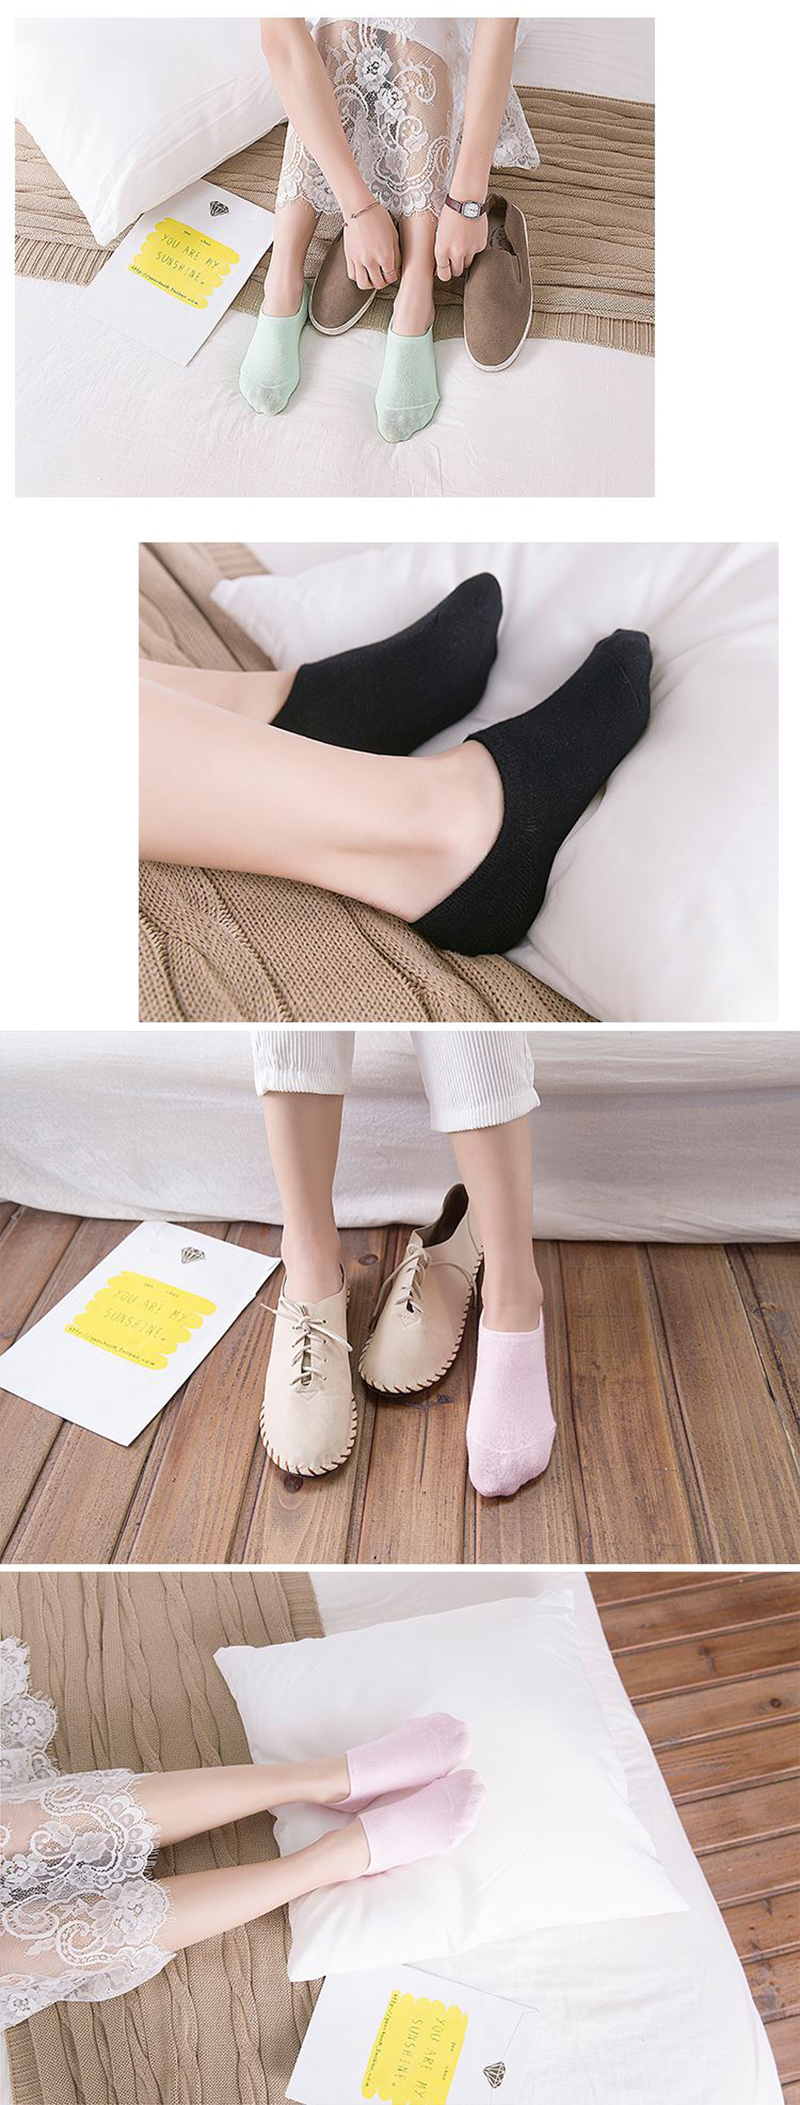 Comfortable cartoon ankle invisible women socks cute female men Ladies bamboo no show socks Hosiery Female 5pairs/lot 7